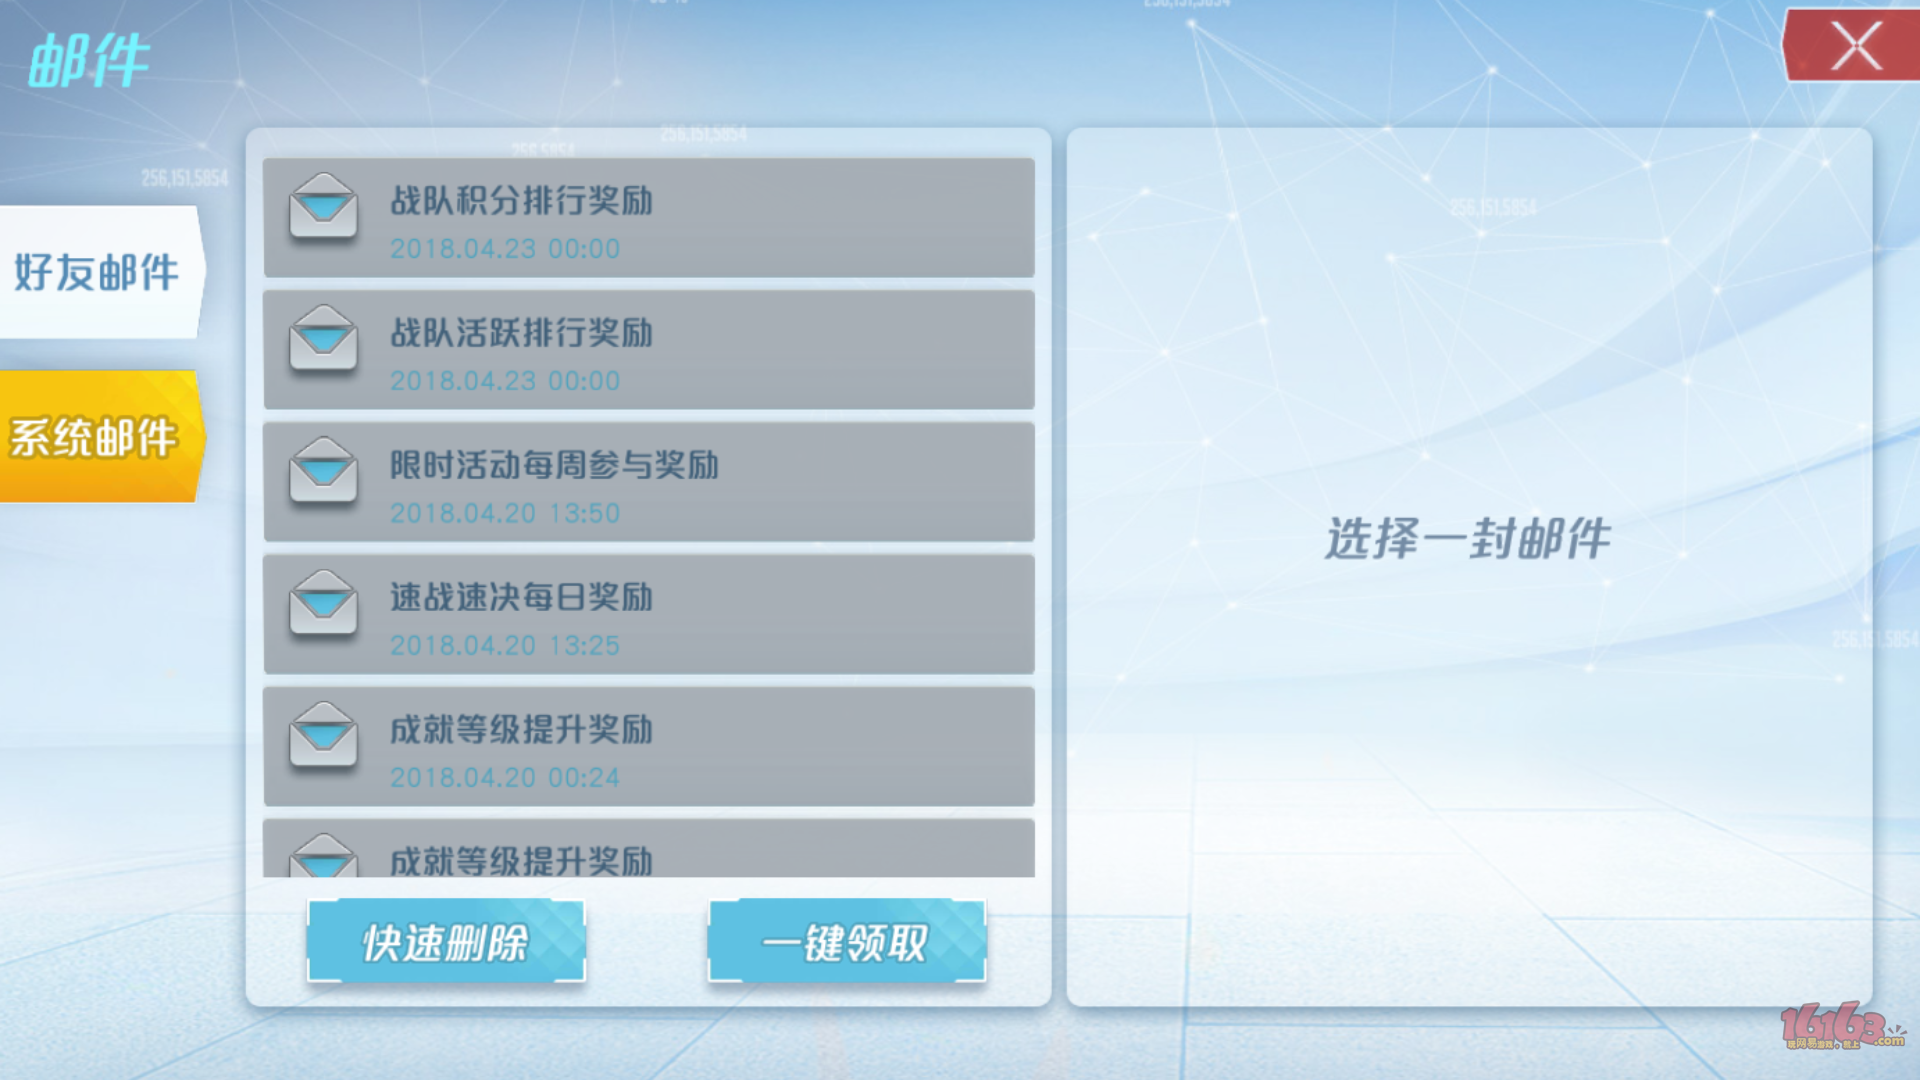 Screenshot_2018-04-25-00-07-23-789_com.netease.gd.png